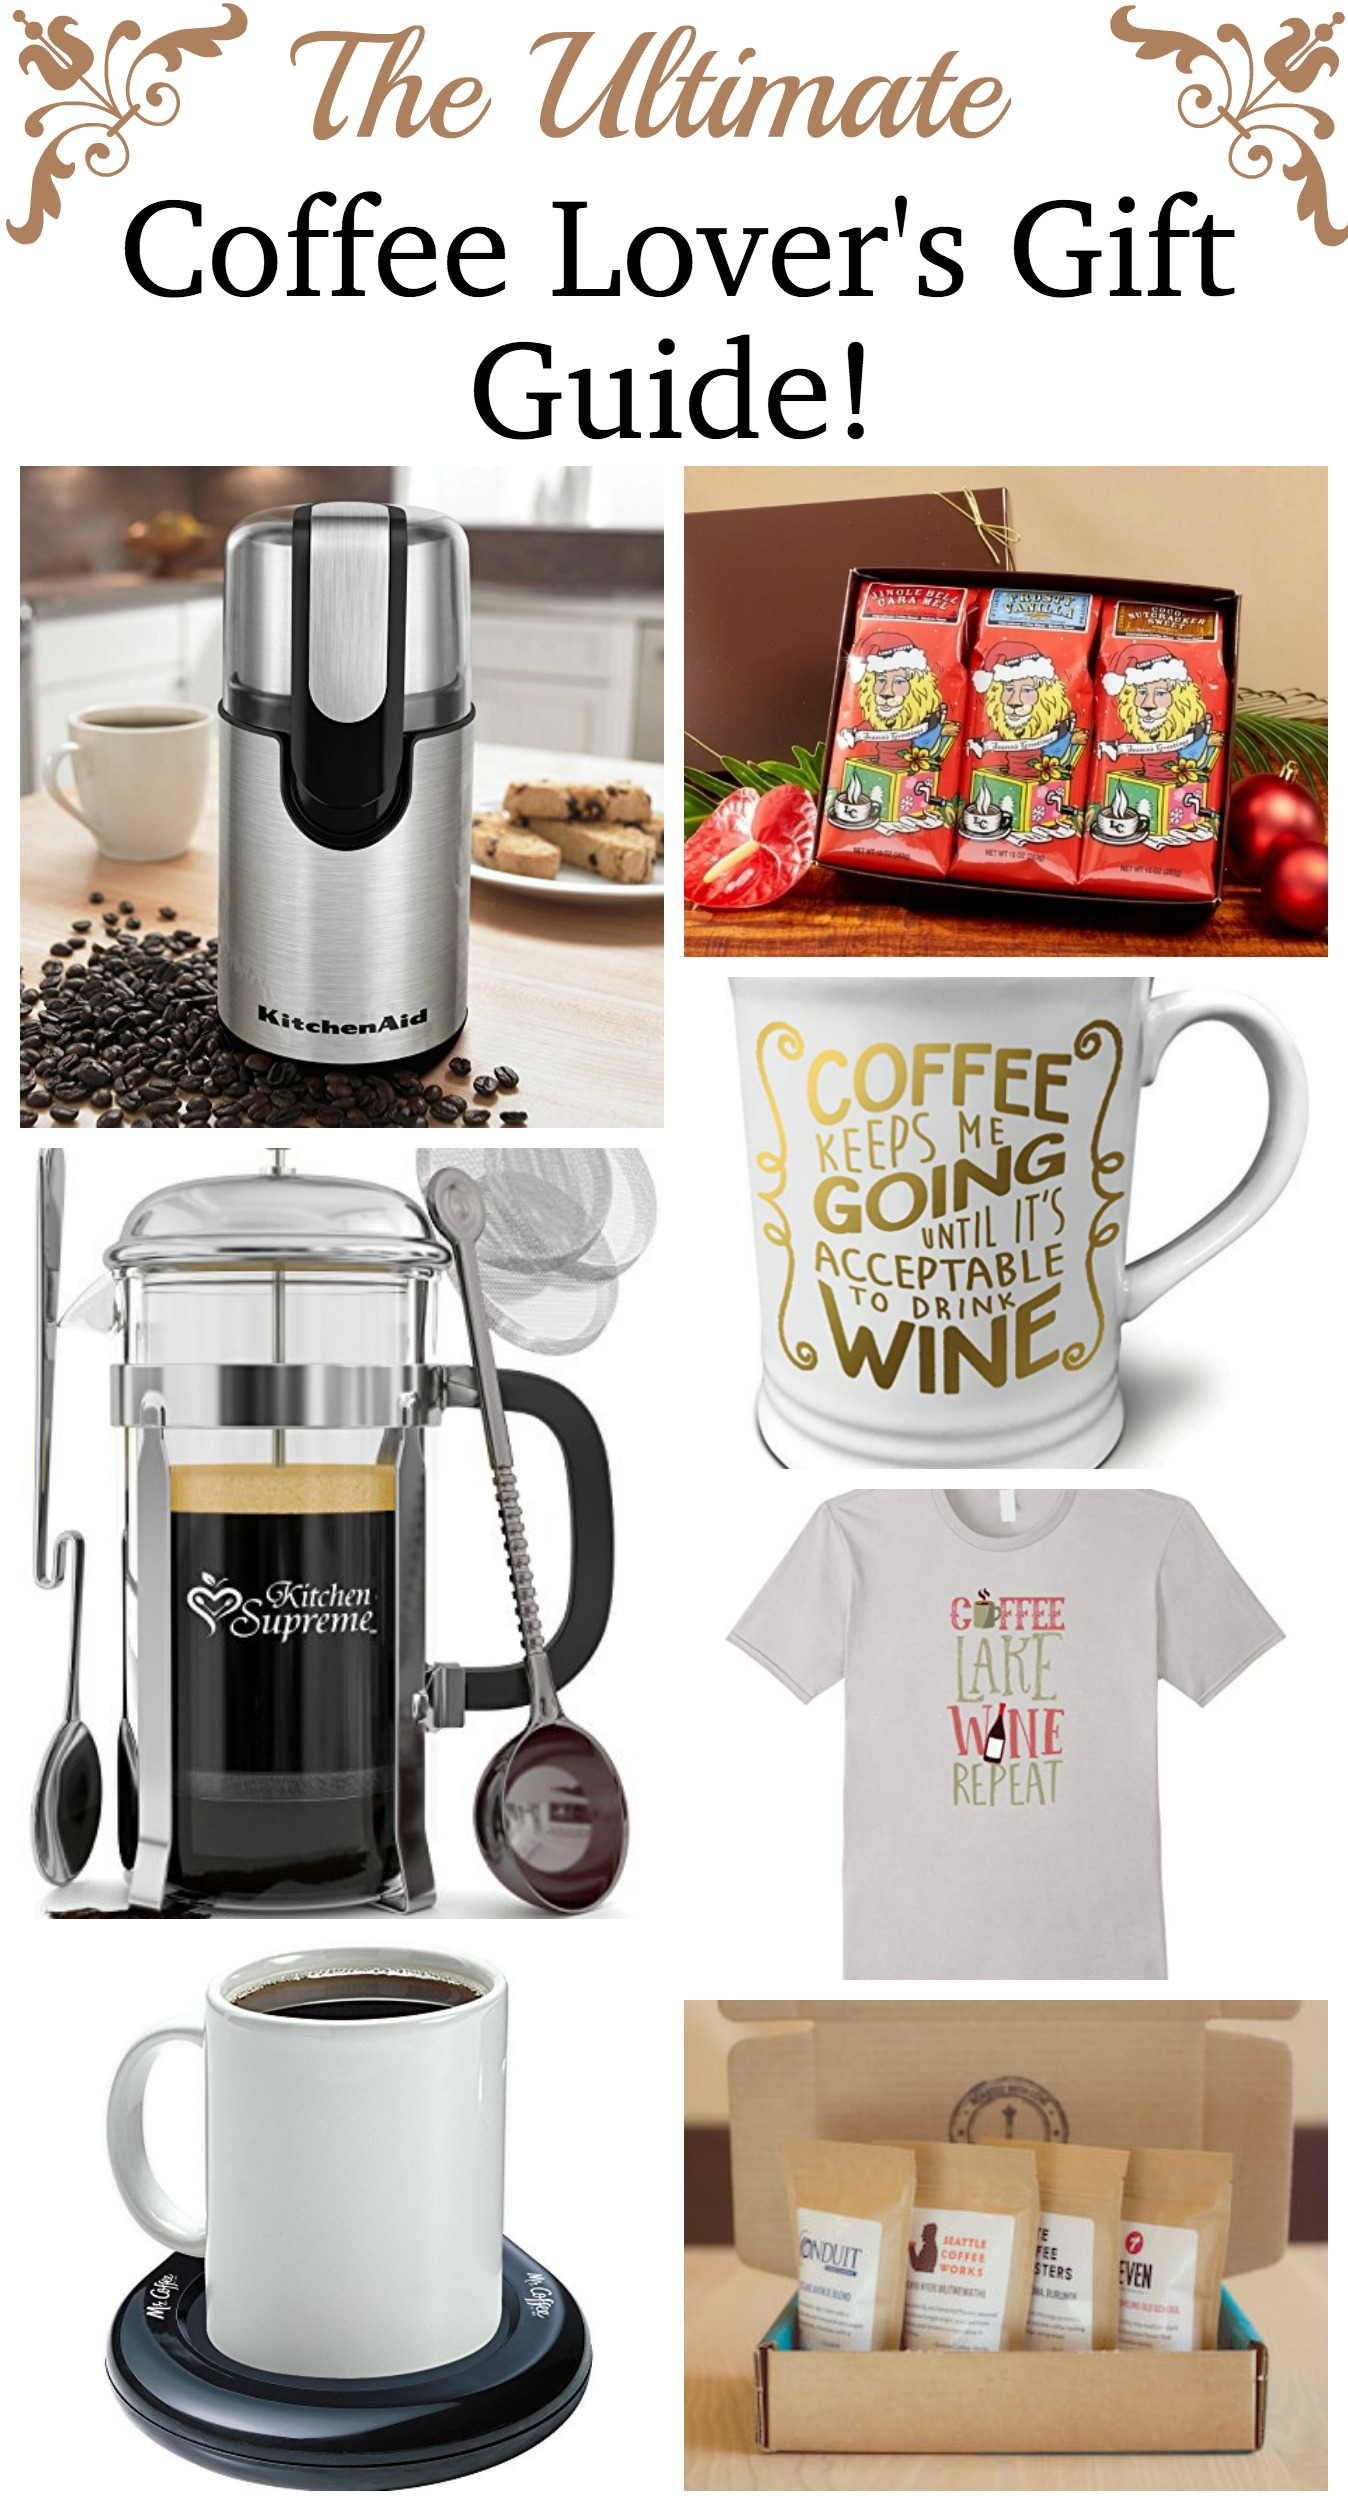 Great Gift Ideas for that Coffee Lover on your gift list! Coffee Lovers Gift Guide!